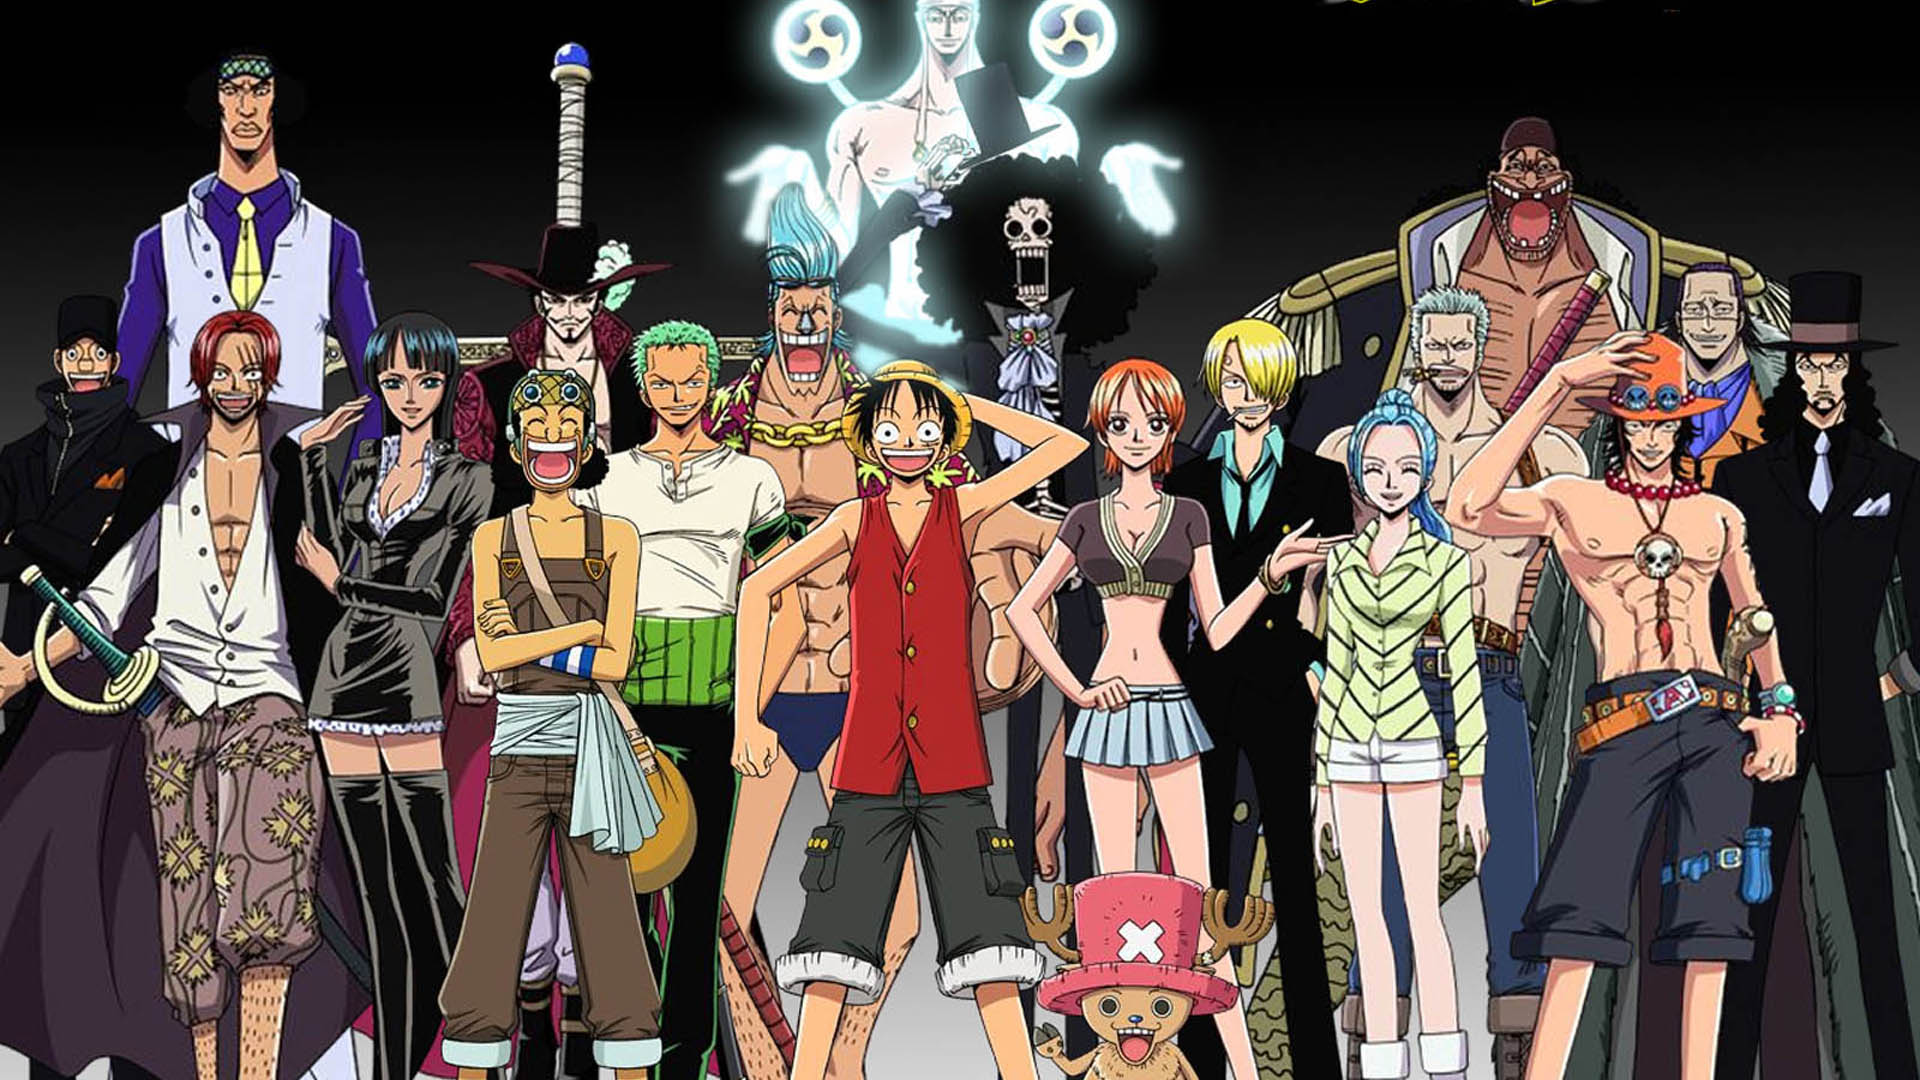 Download 6600 Background Anime One Piece Hd Paling Keren Download Background